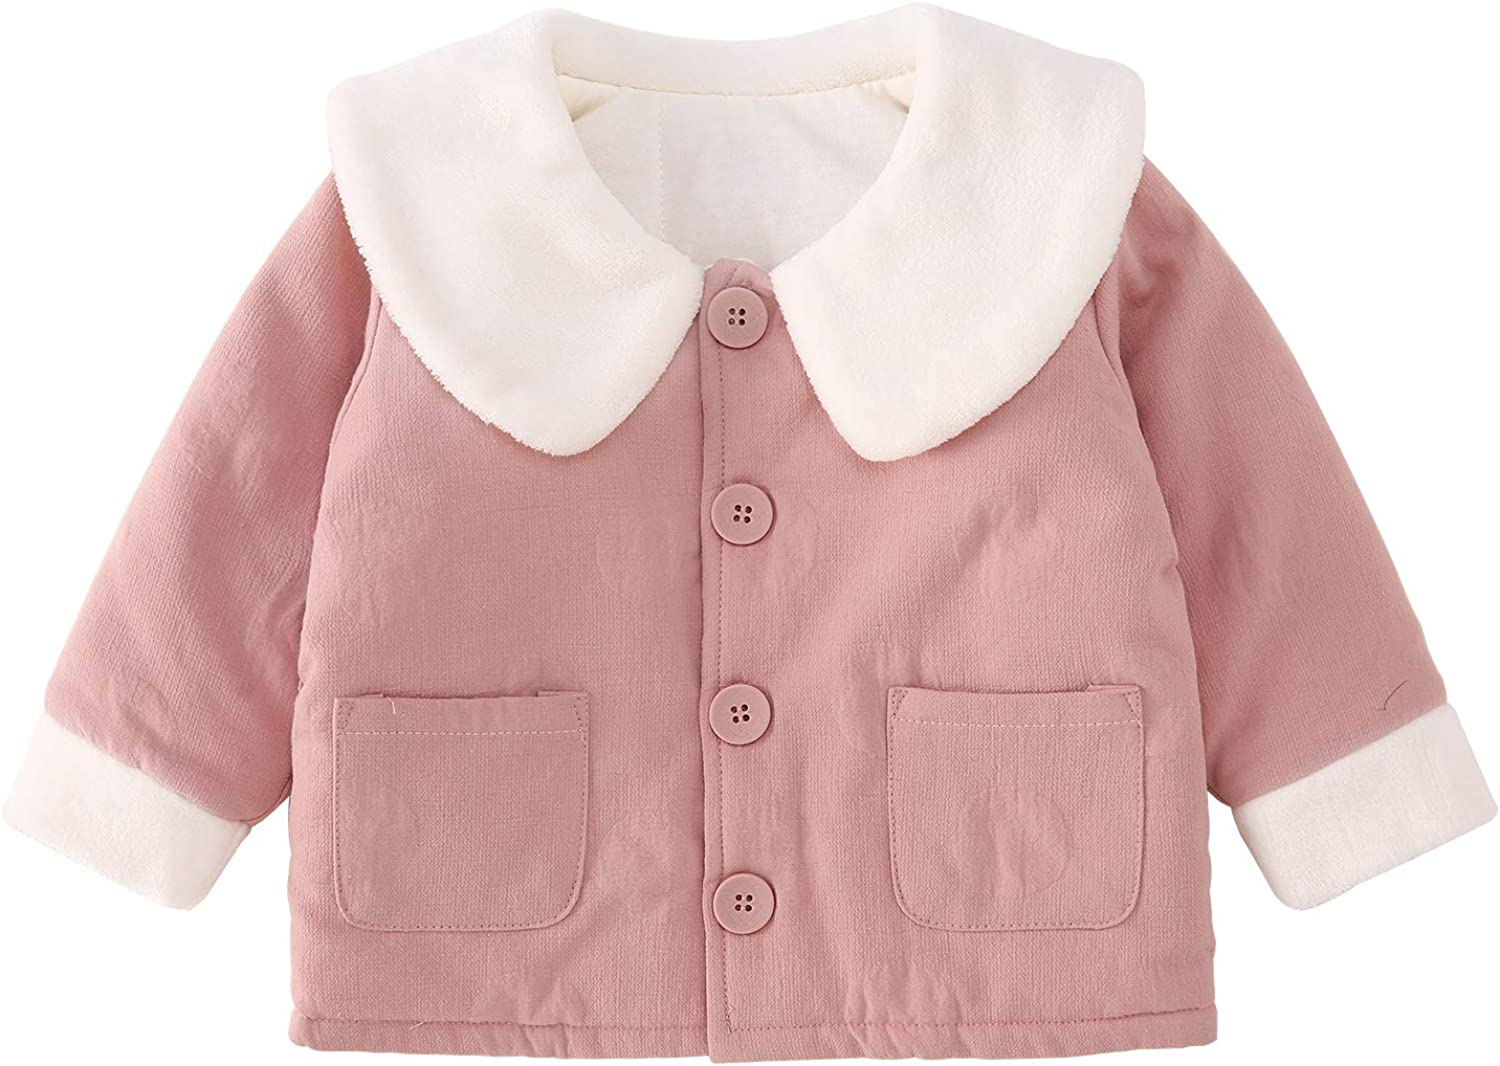 pureborn Baby Girls Jacket Peter Pan Collar Outfit Winter Autumn Cotton Warm Cotton Coat Top Pink 1-2 Years